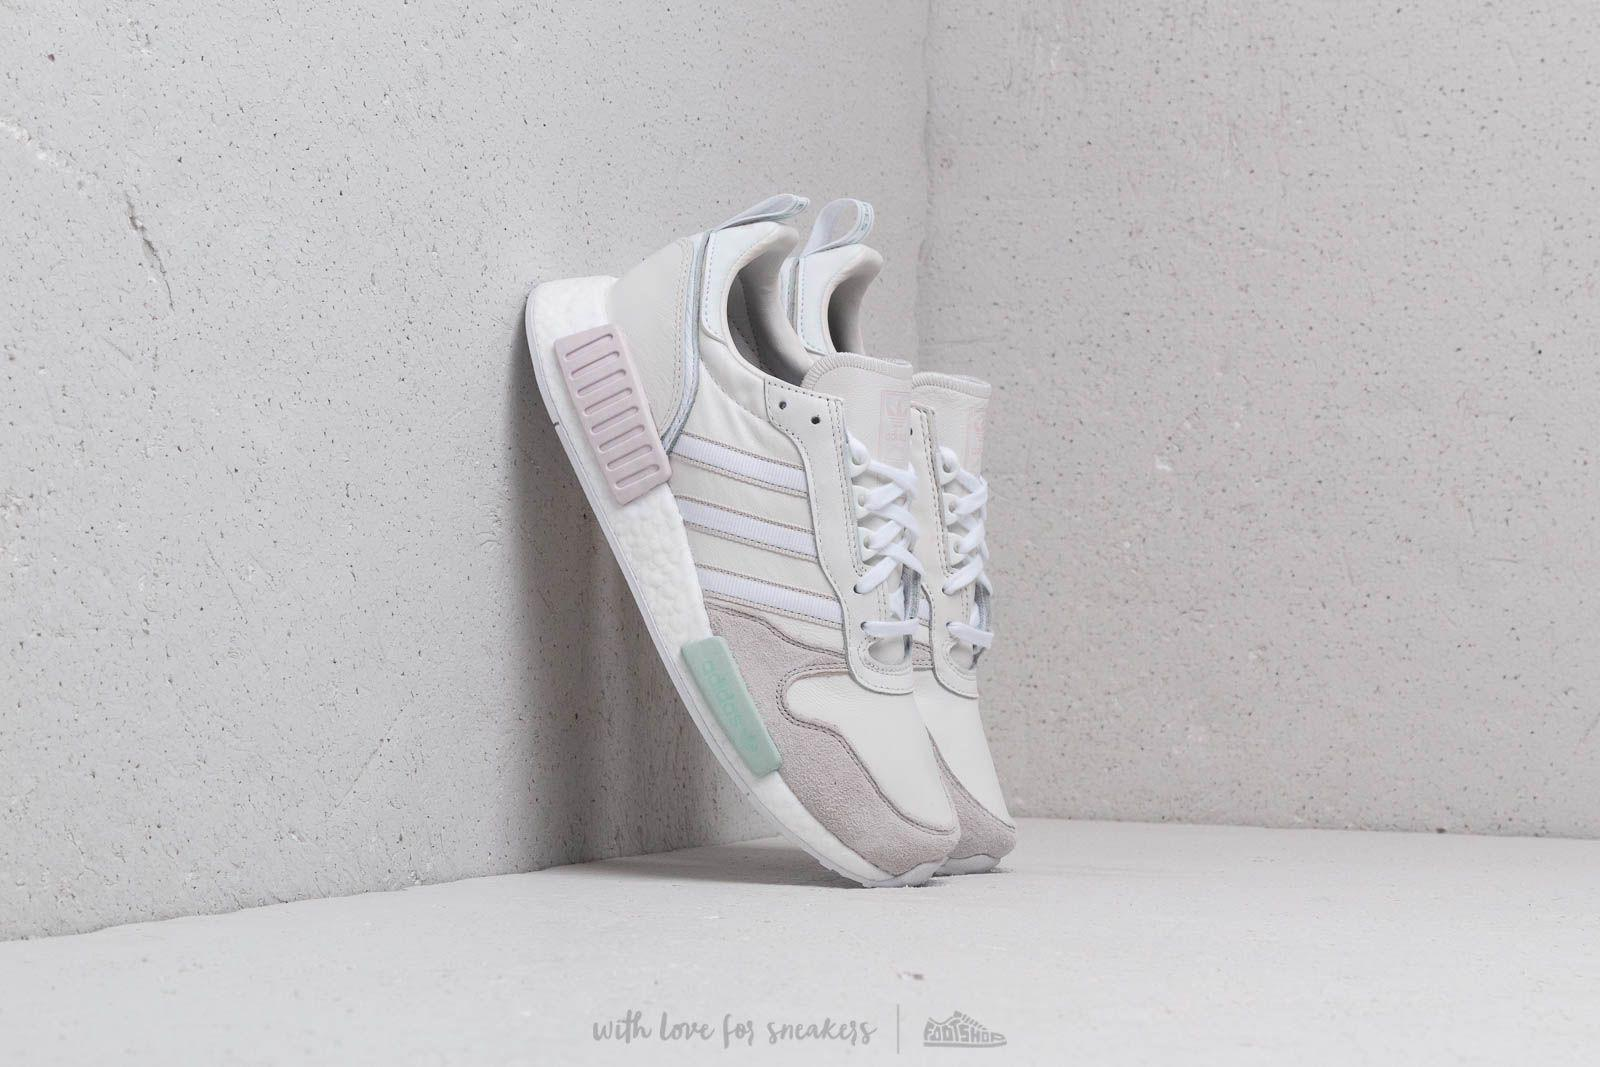 9f5b064c64fe1 Lyst - adidas Originals Adidas Rising Star X R1 Cloud White  Ftw ...